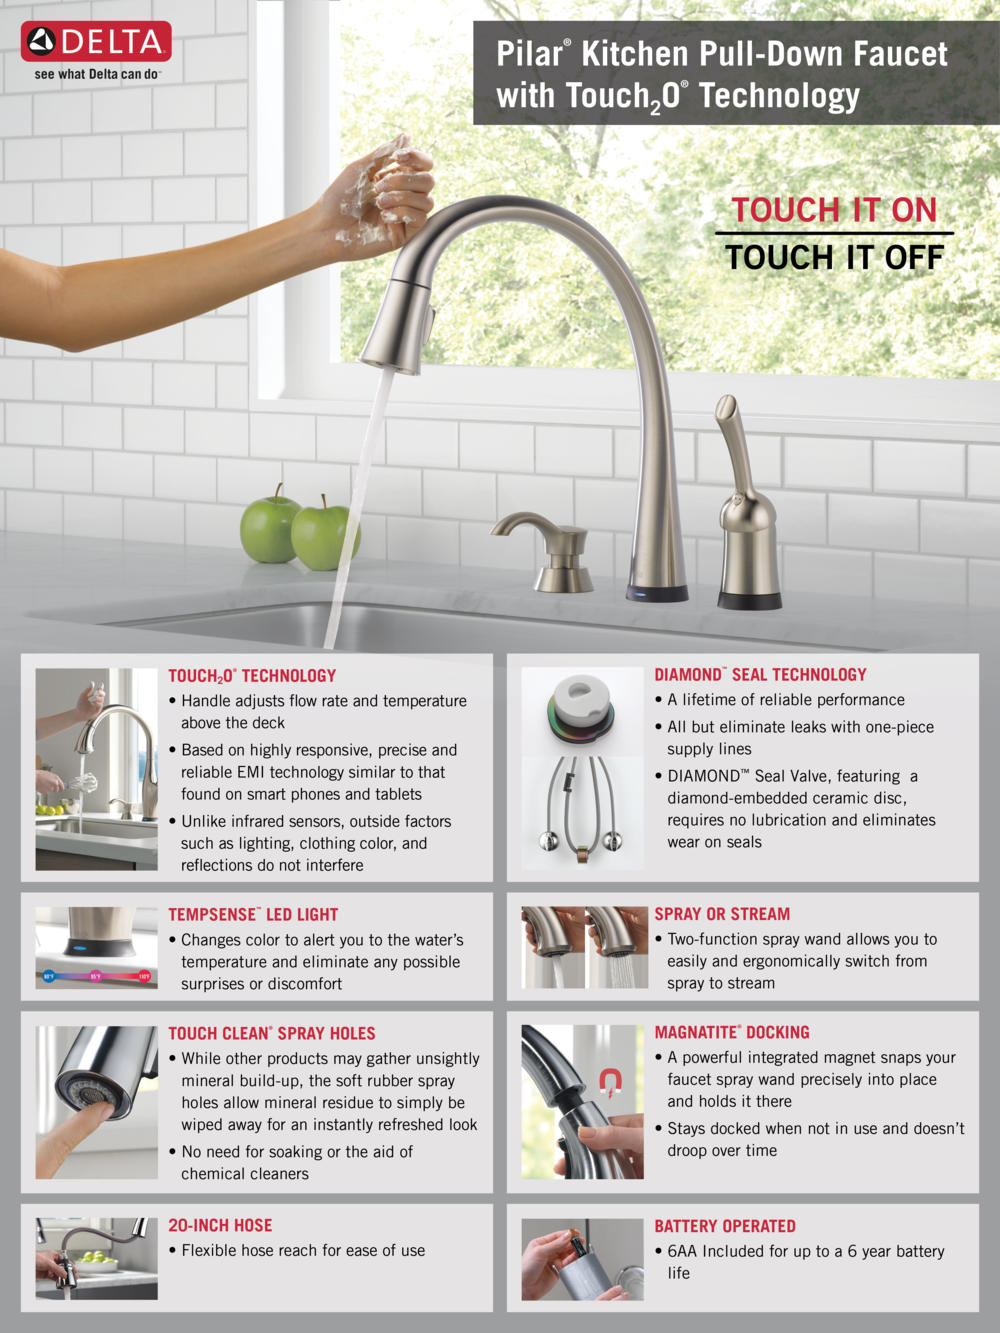 Home Depot Delta Faucet Touch2OKitchen Infographic